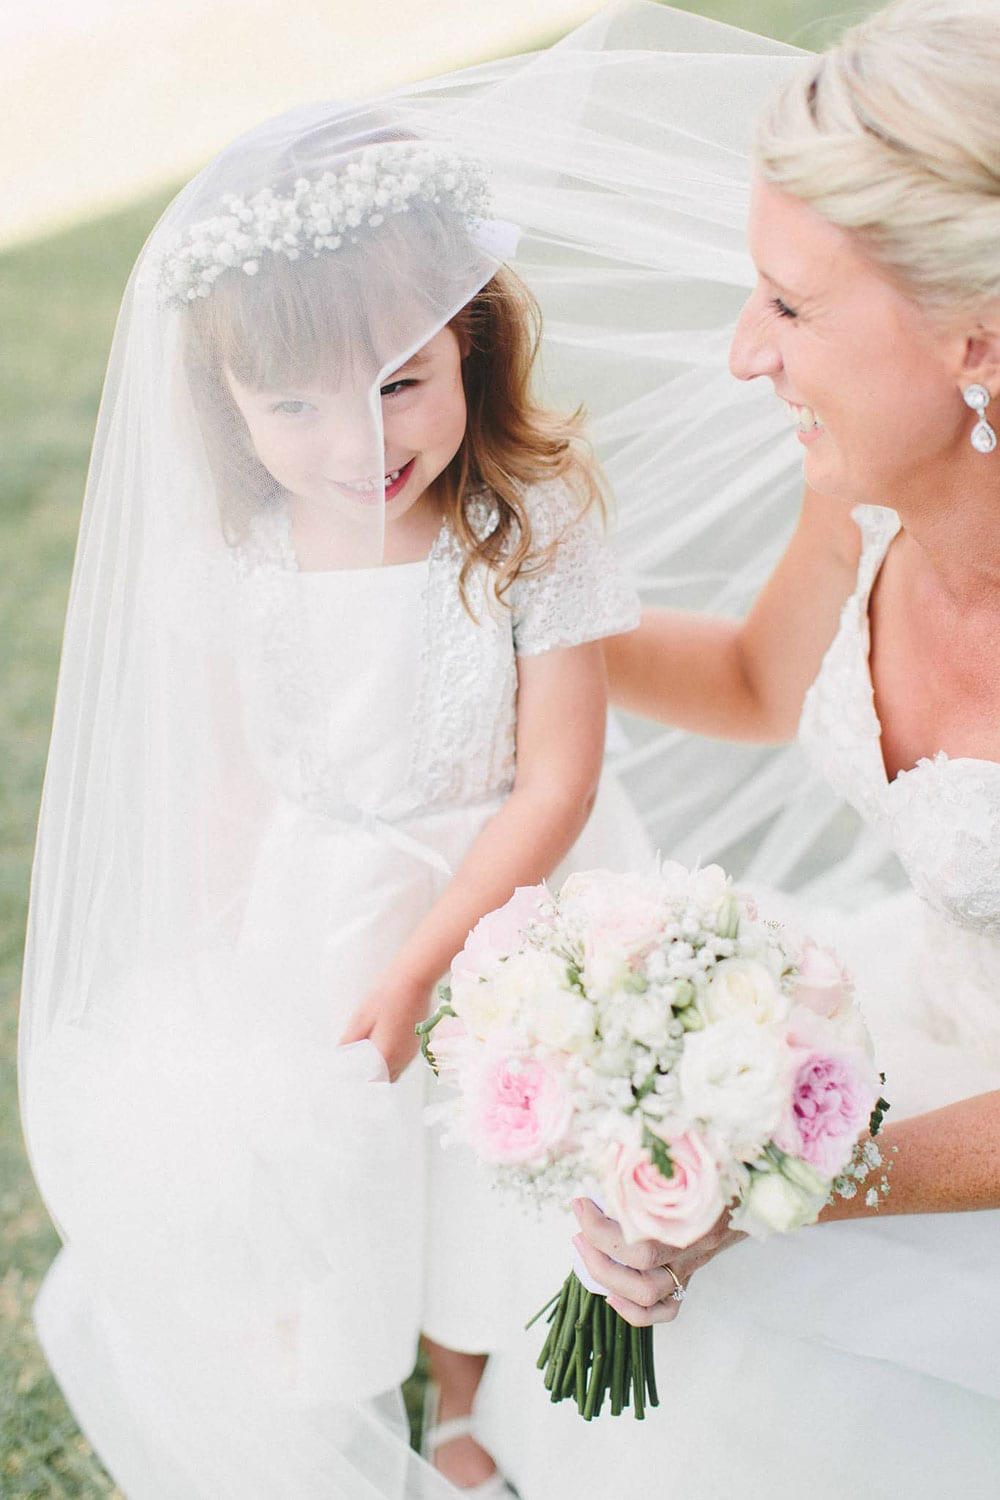 Real Weddings | Vinka Design | Real Brides Wearing Vinka Gowns | Louise and Ryan - Louise with flower girl